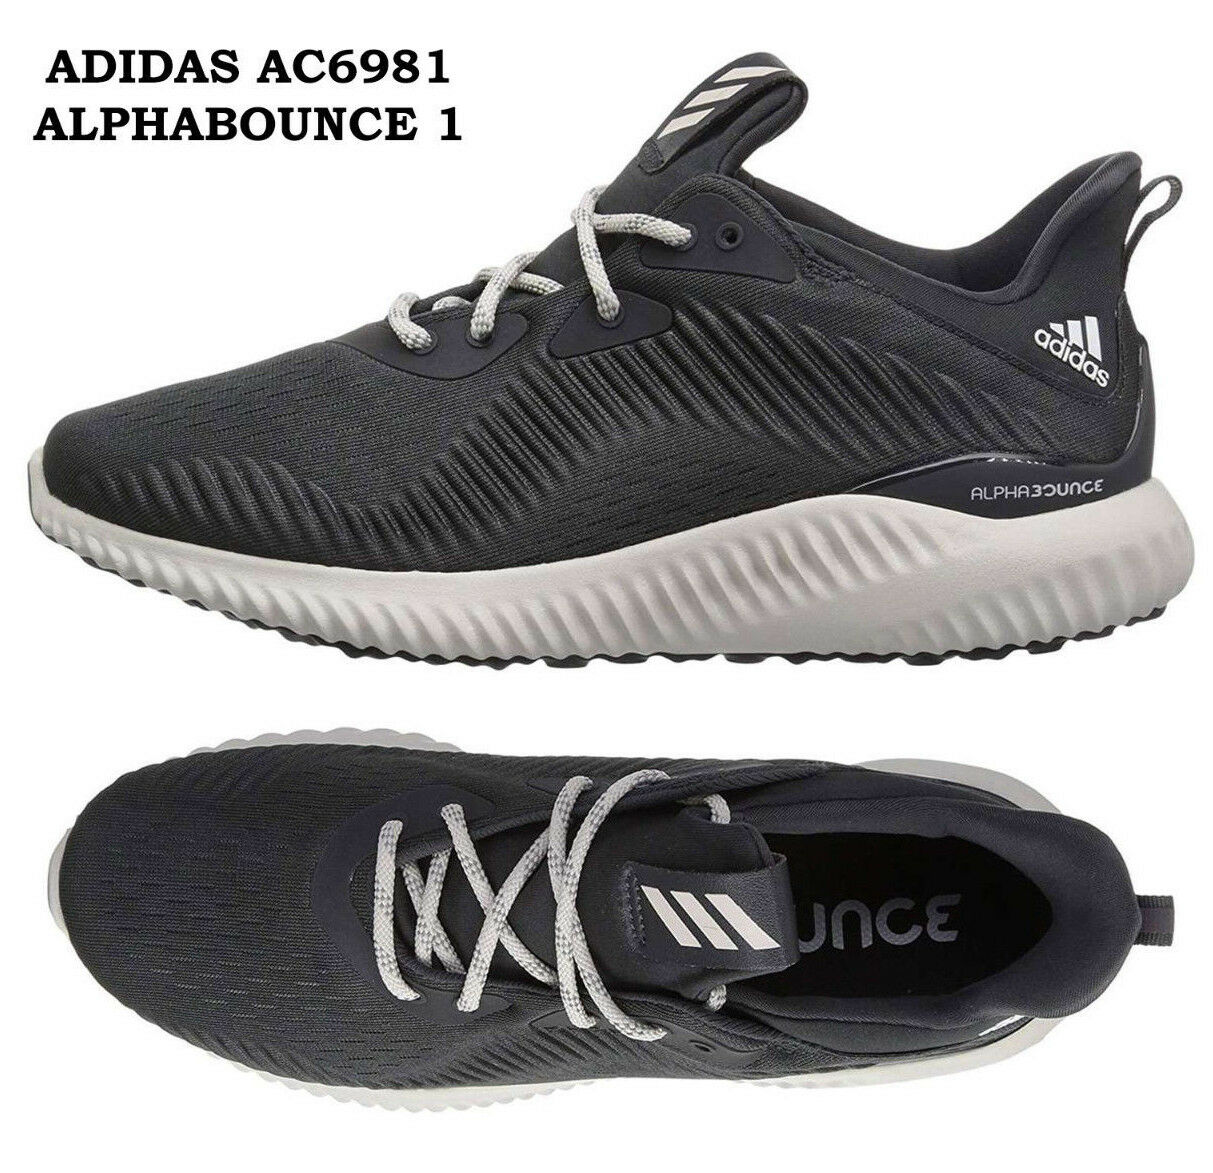 Womens ADIDAS ALPHABOUNCE 1 Womens Running shoes Carbon Sneakers AC6981 NEW